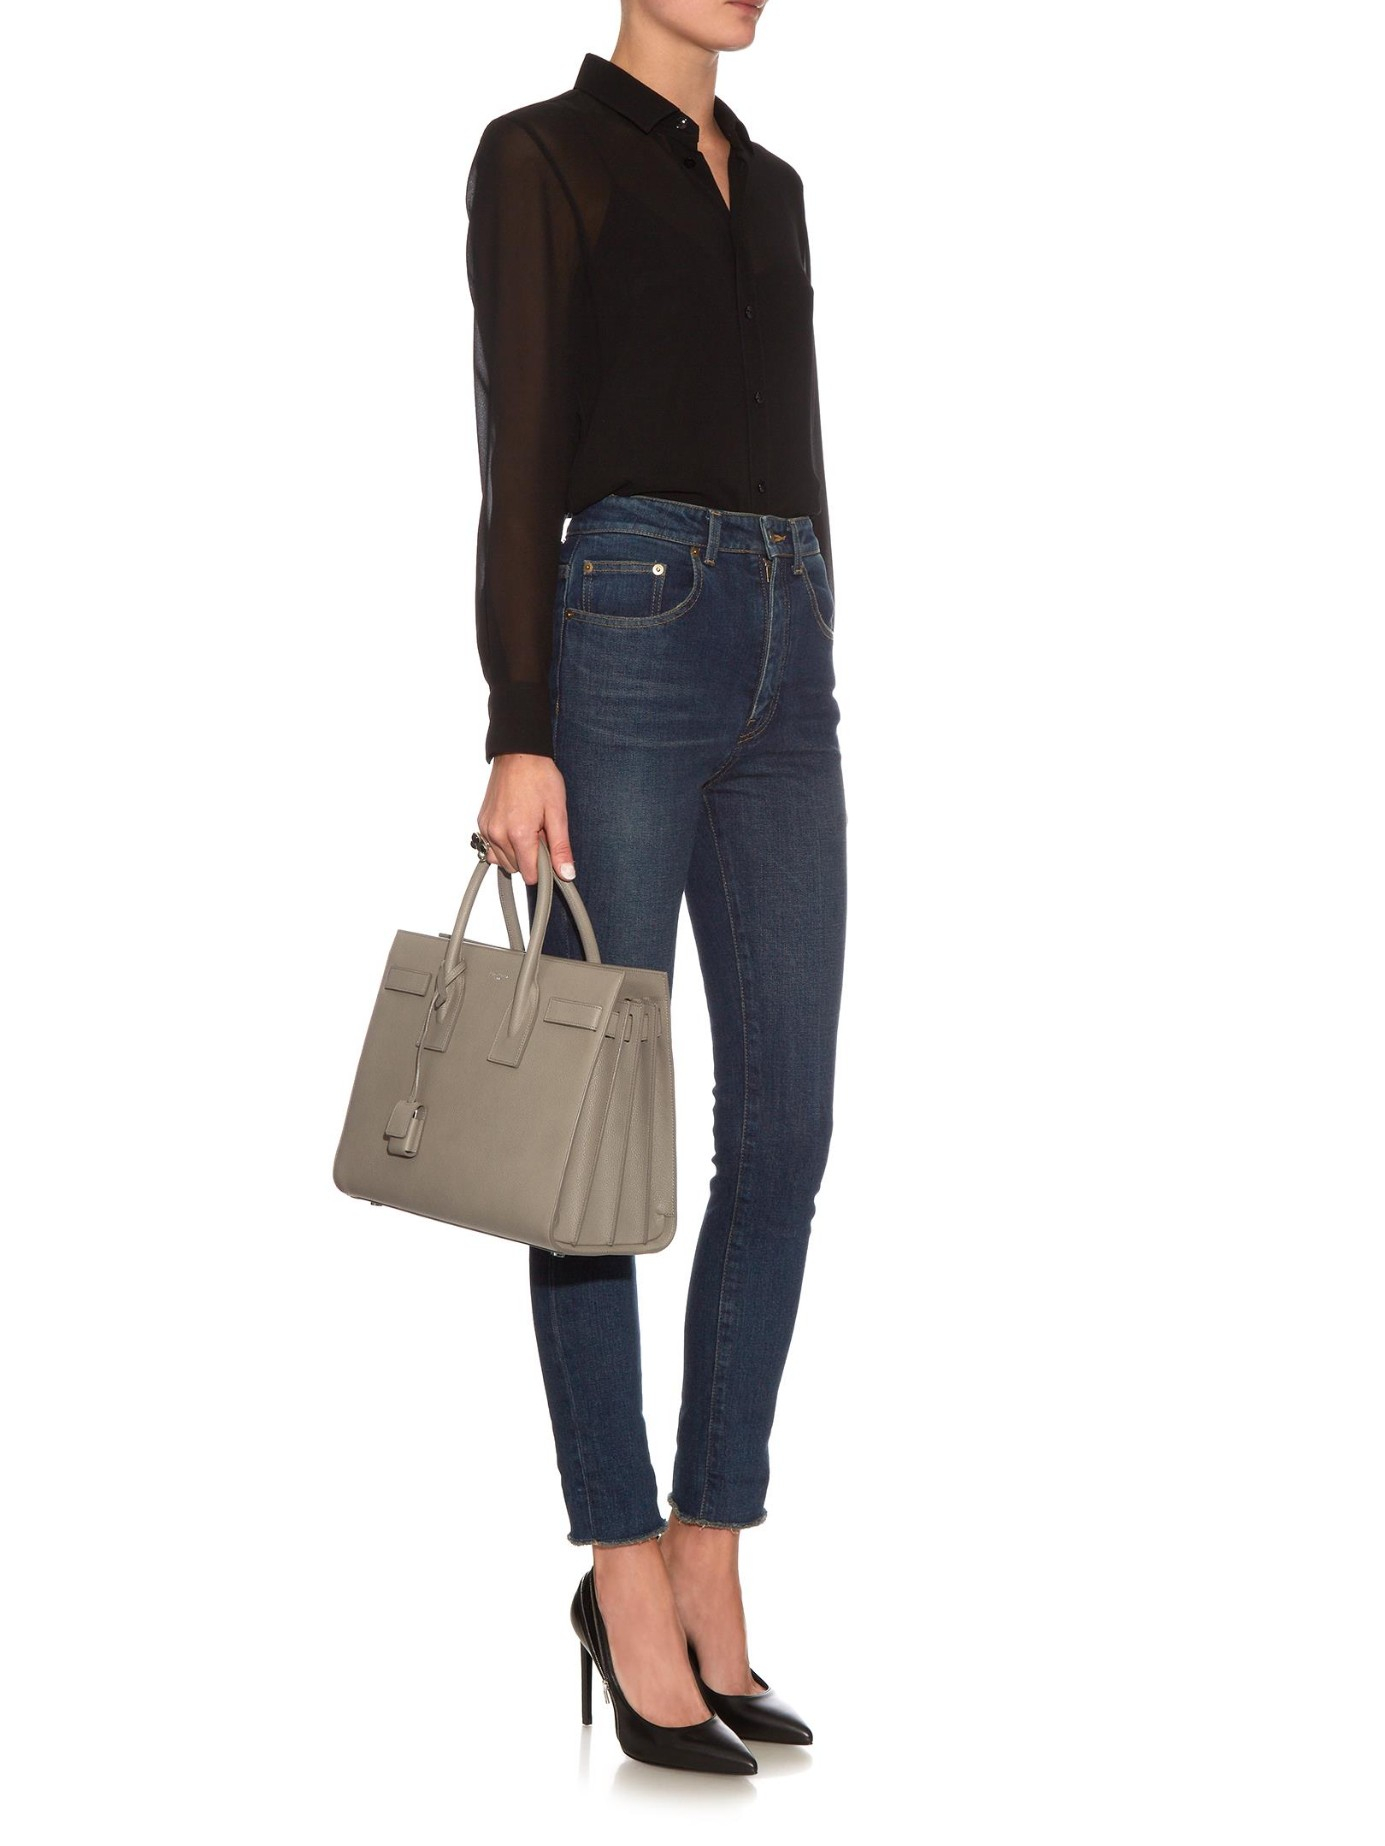 yves saint laurent cabas rive gauche small crocodile-embossed leather tote